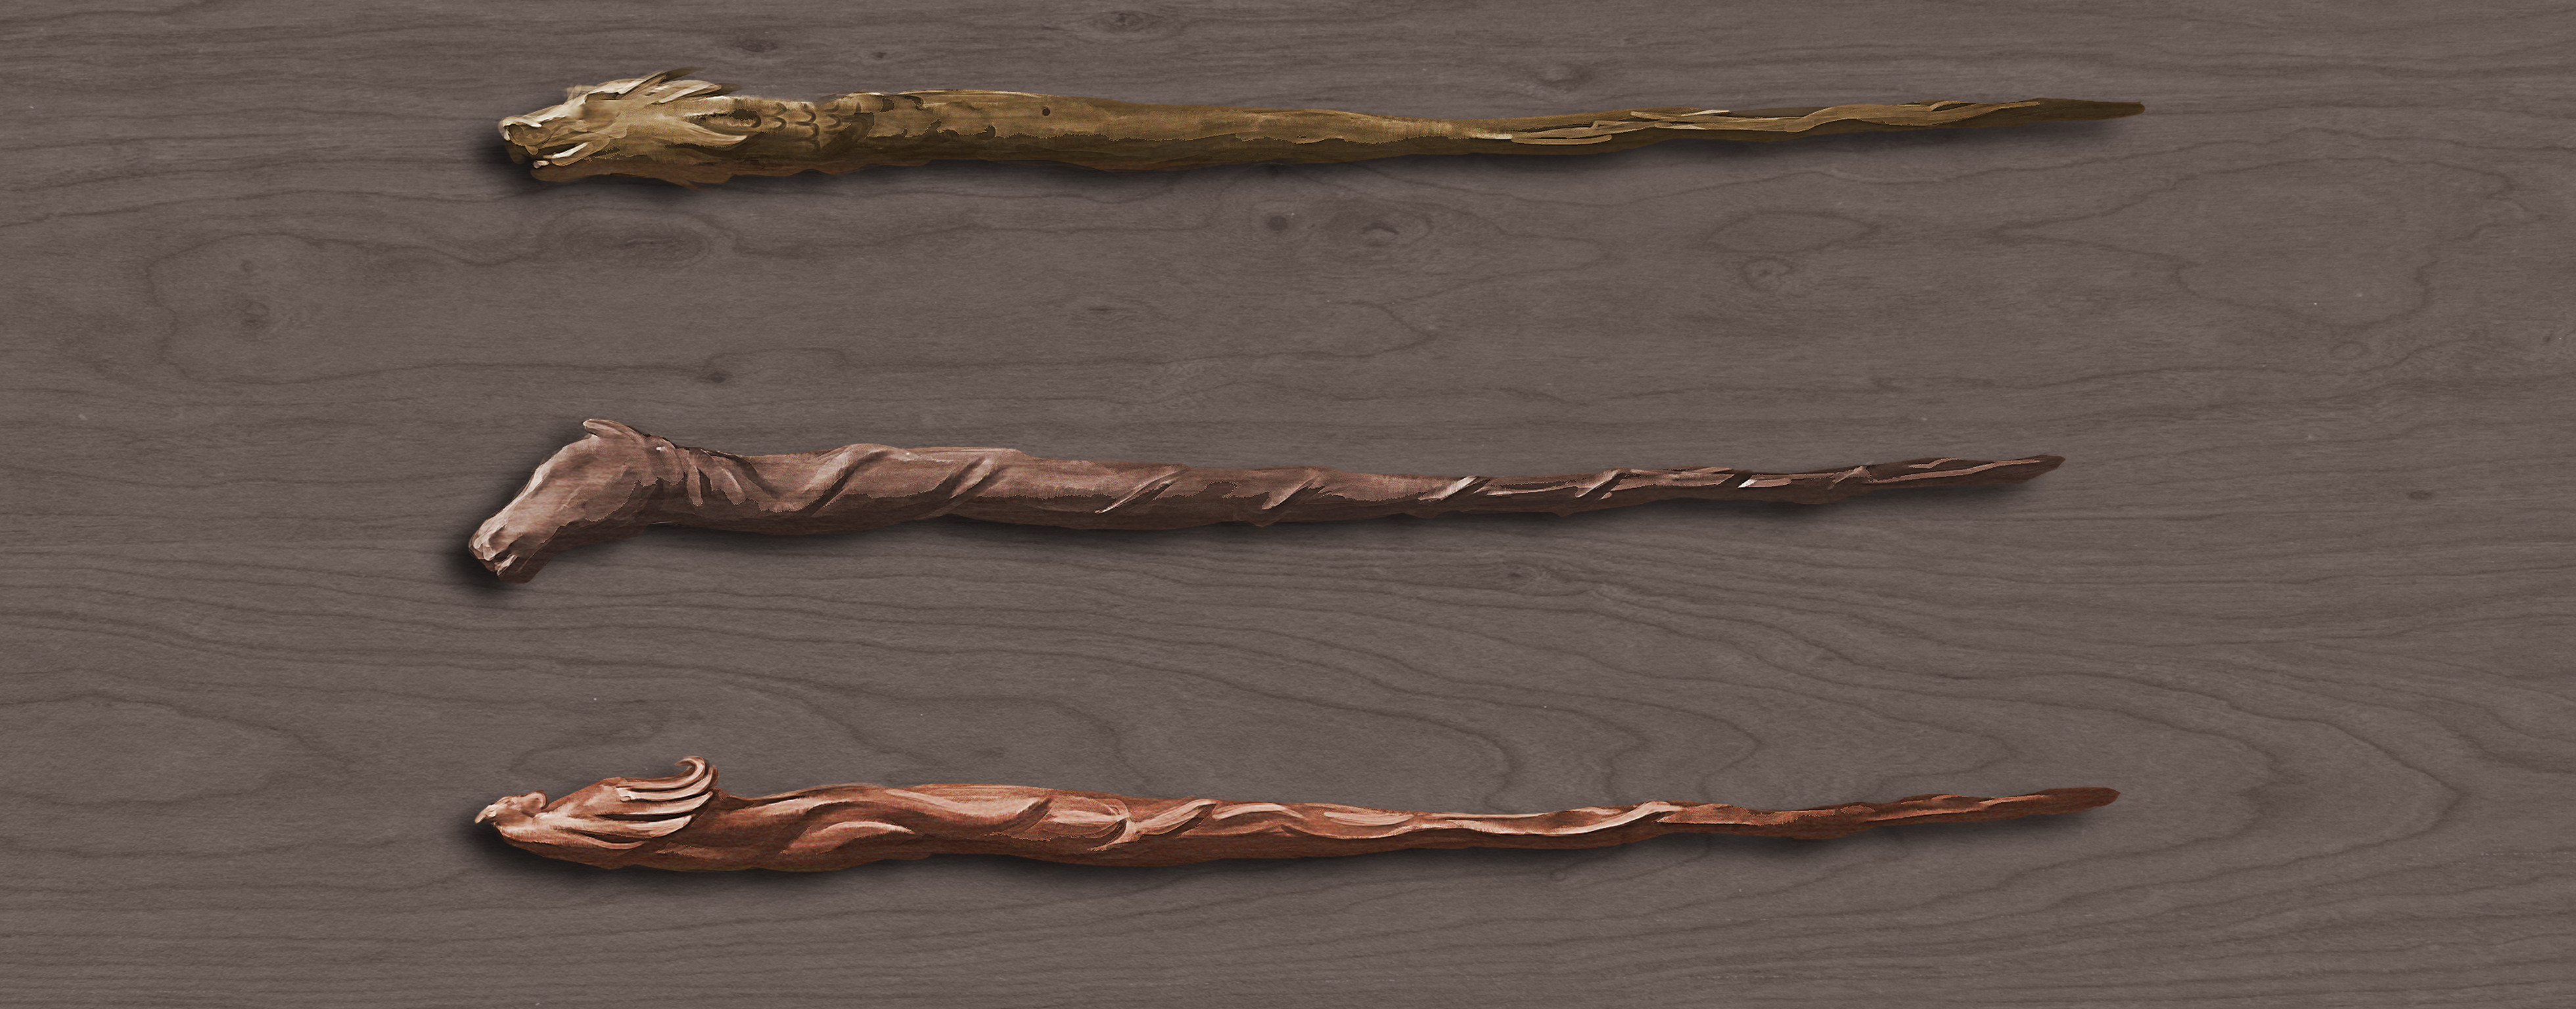 Discover your wand on Pottermore | Wizarding World